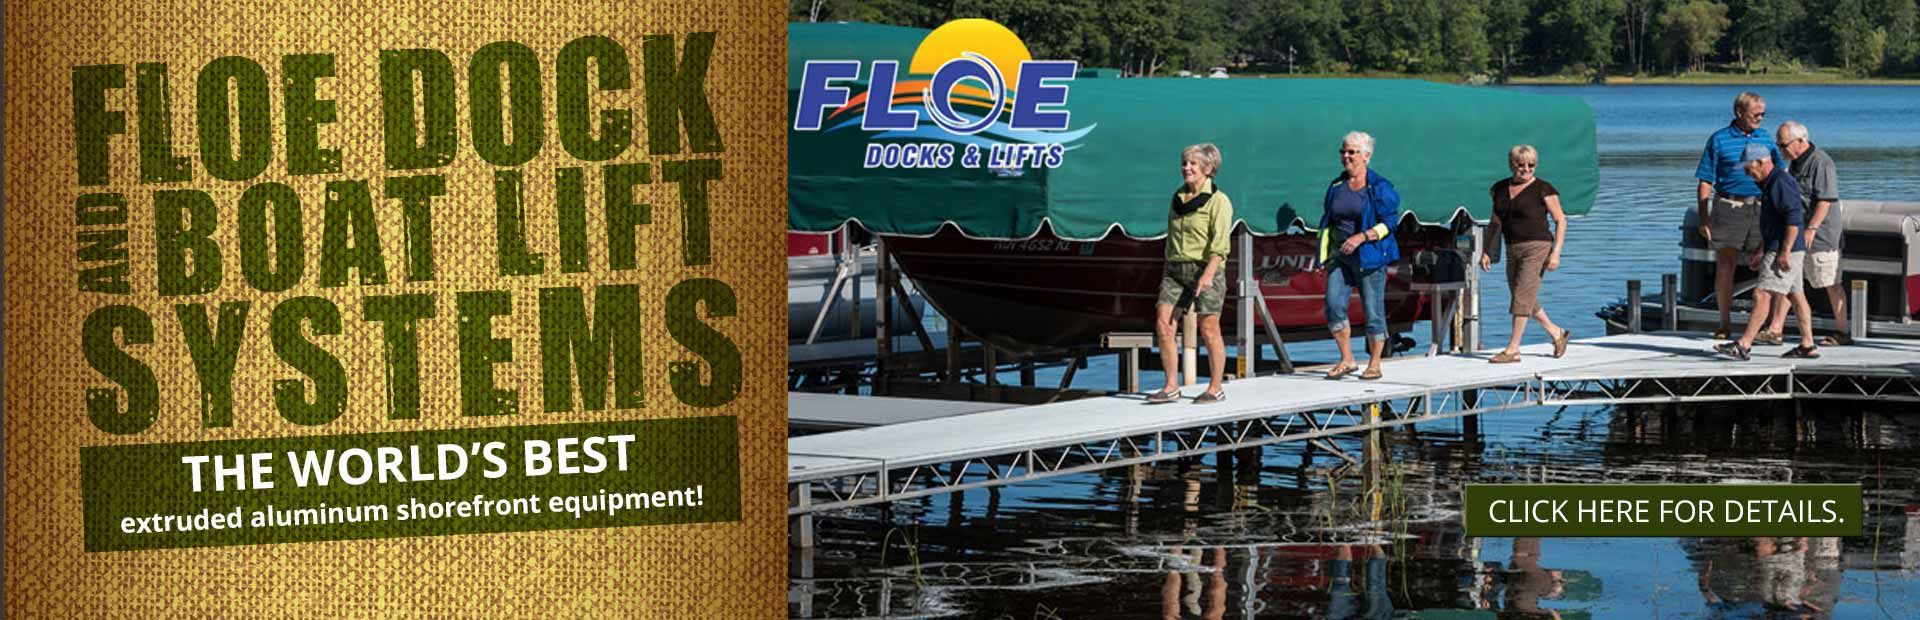 FLOE Dock & Boat Lift Systems: The world's best extruded aluminum shorefront equipment! Click here to contact us for details.